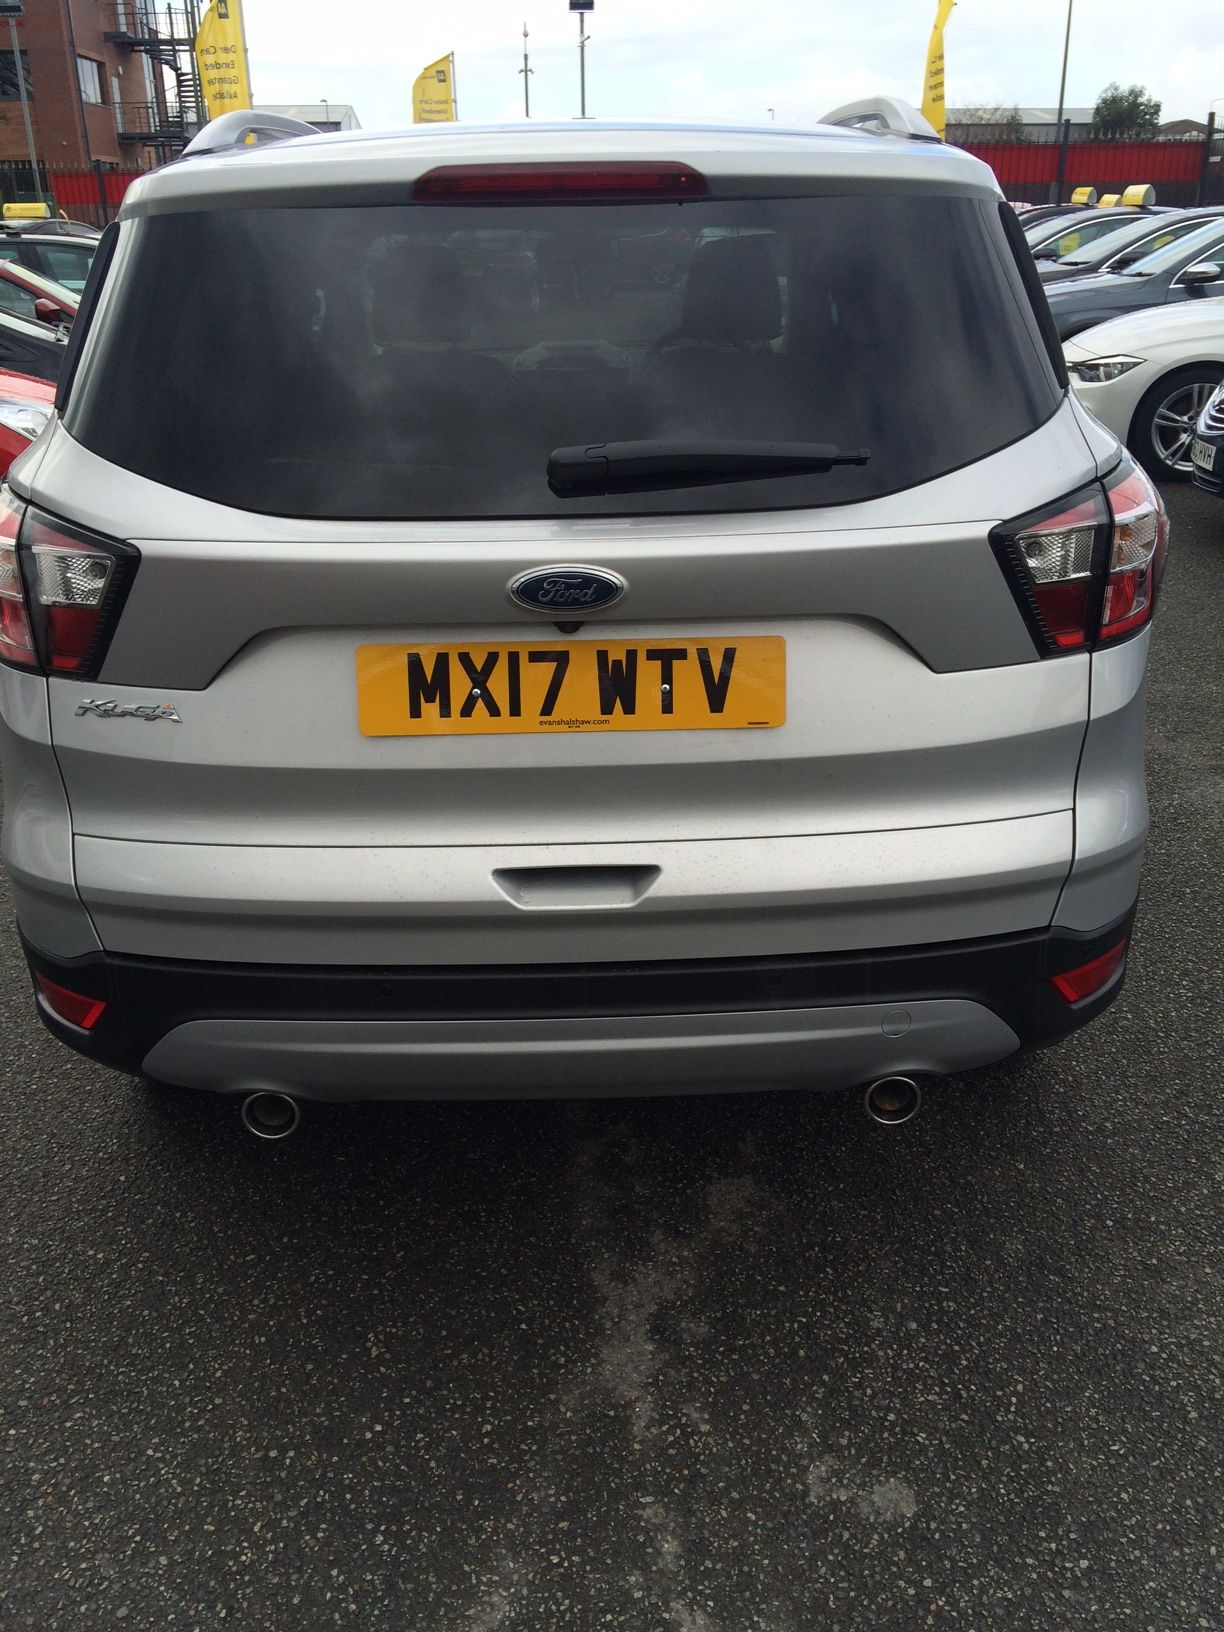 The Ford Kuga Leasing Deal One Of The Many Cars And Vans Available To Lease From Www Carlease Uk Com Car Lease